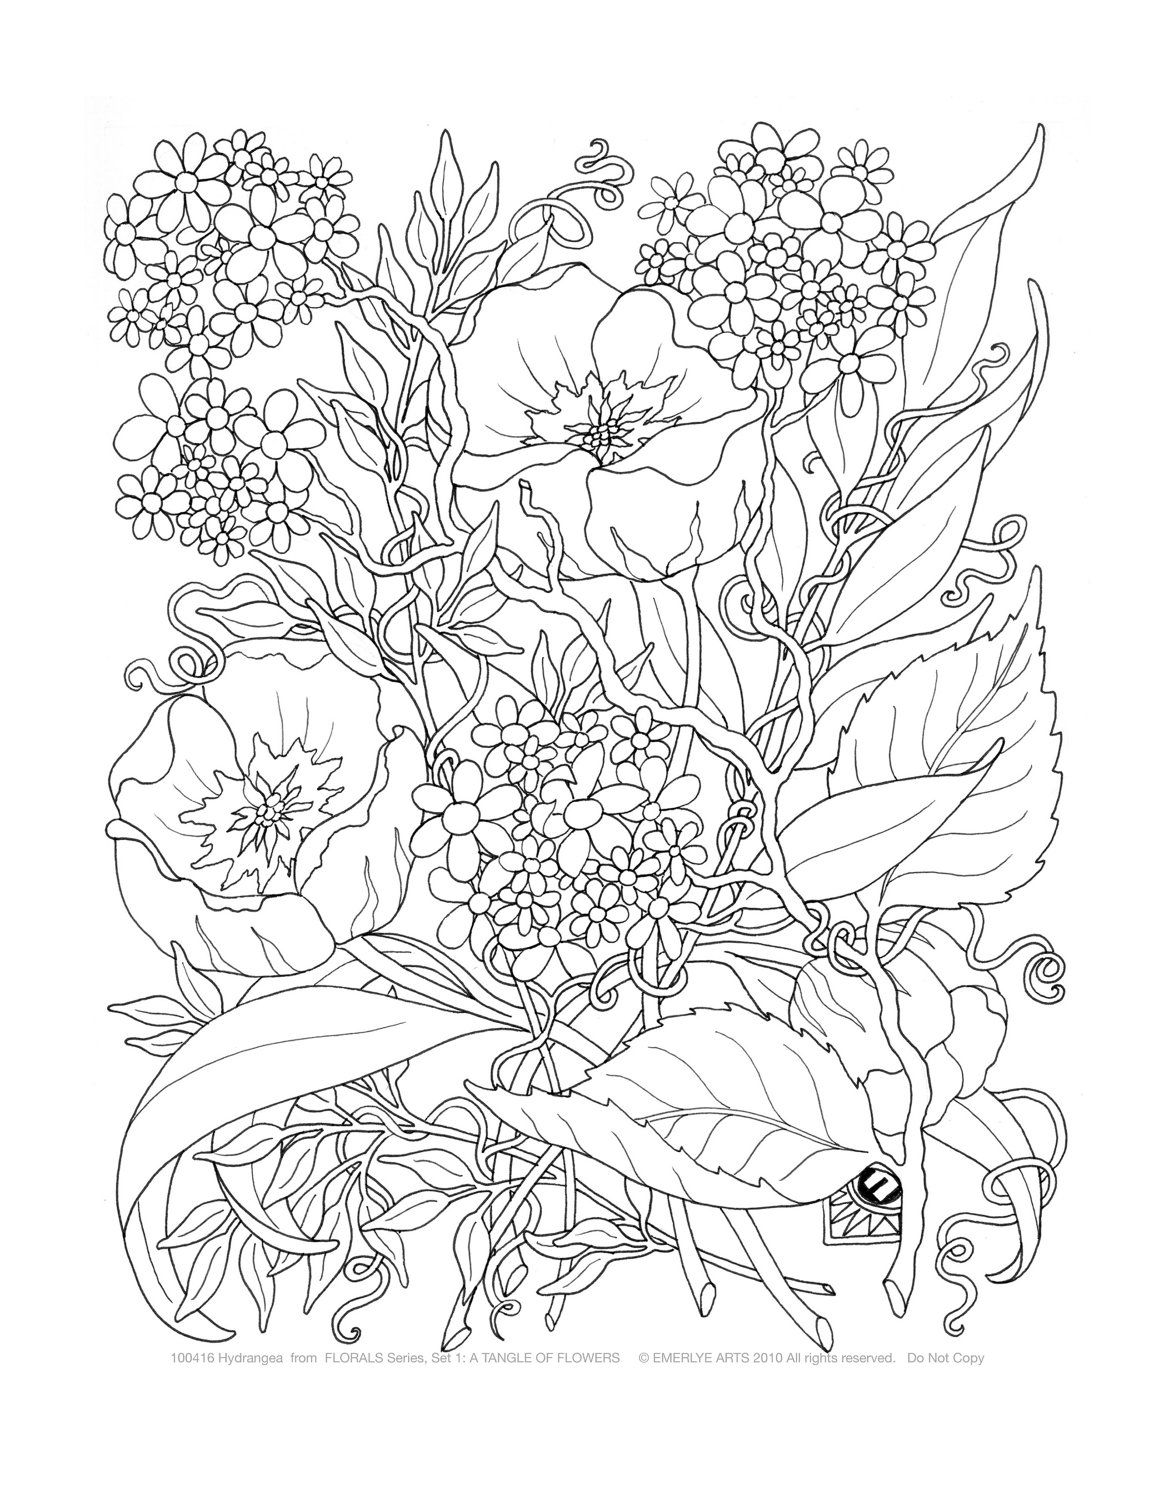 Coloring pages for adults for free - Coloring Pages For Adults Free Large Images